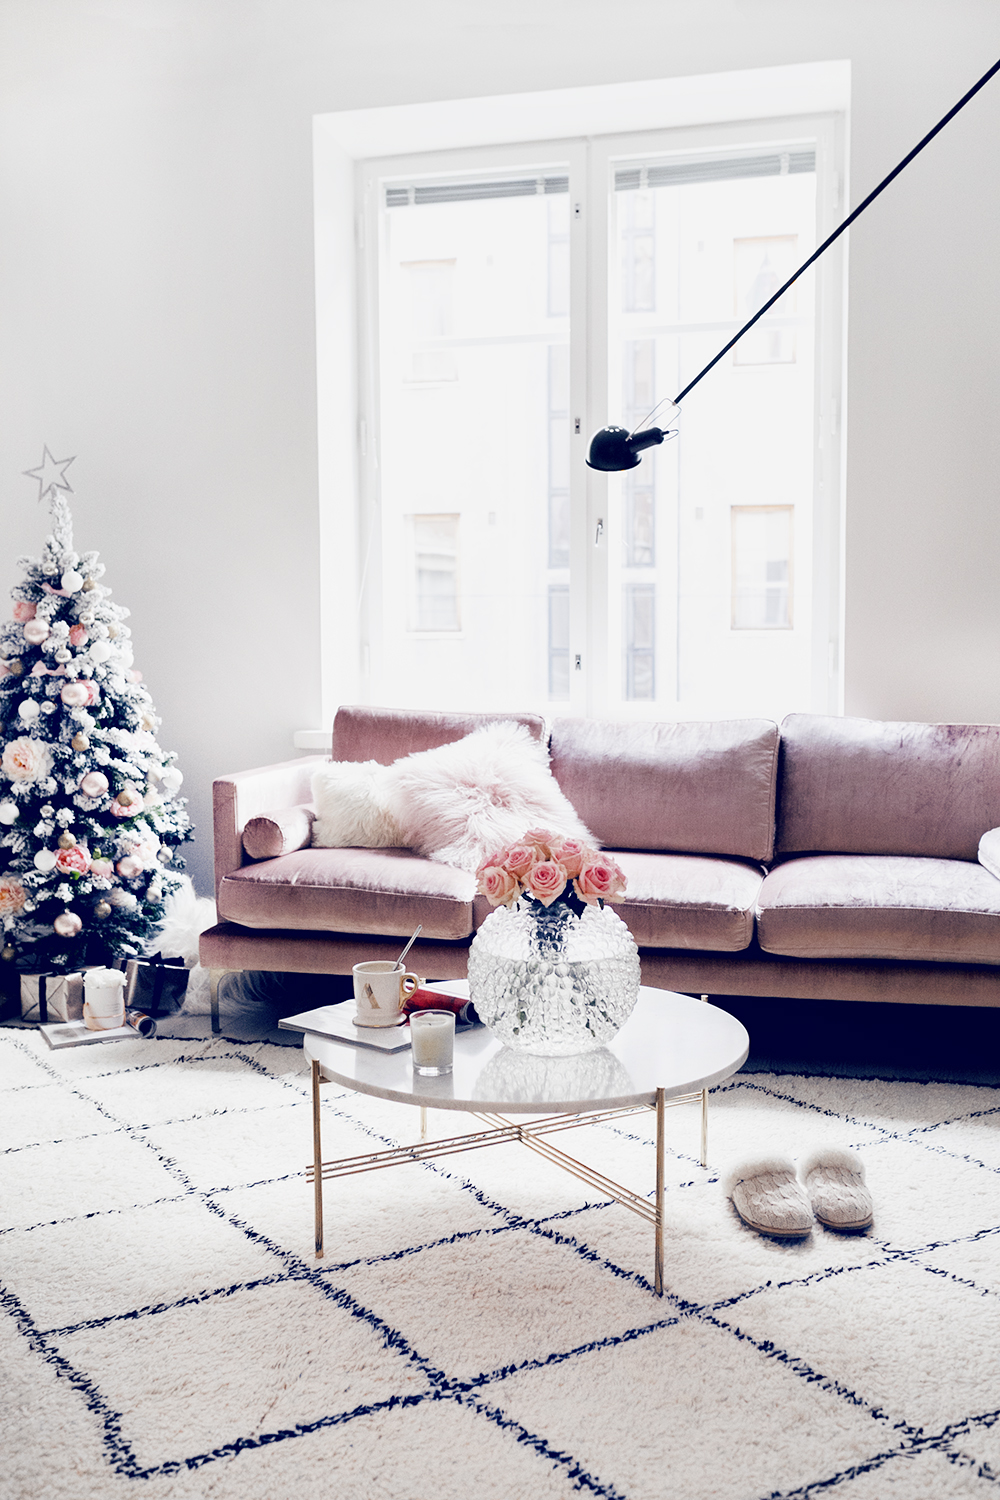 Alexa Dagmar Pink Velvet Sofa with Christmas Tree